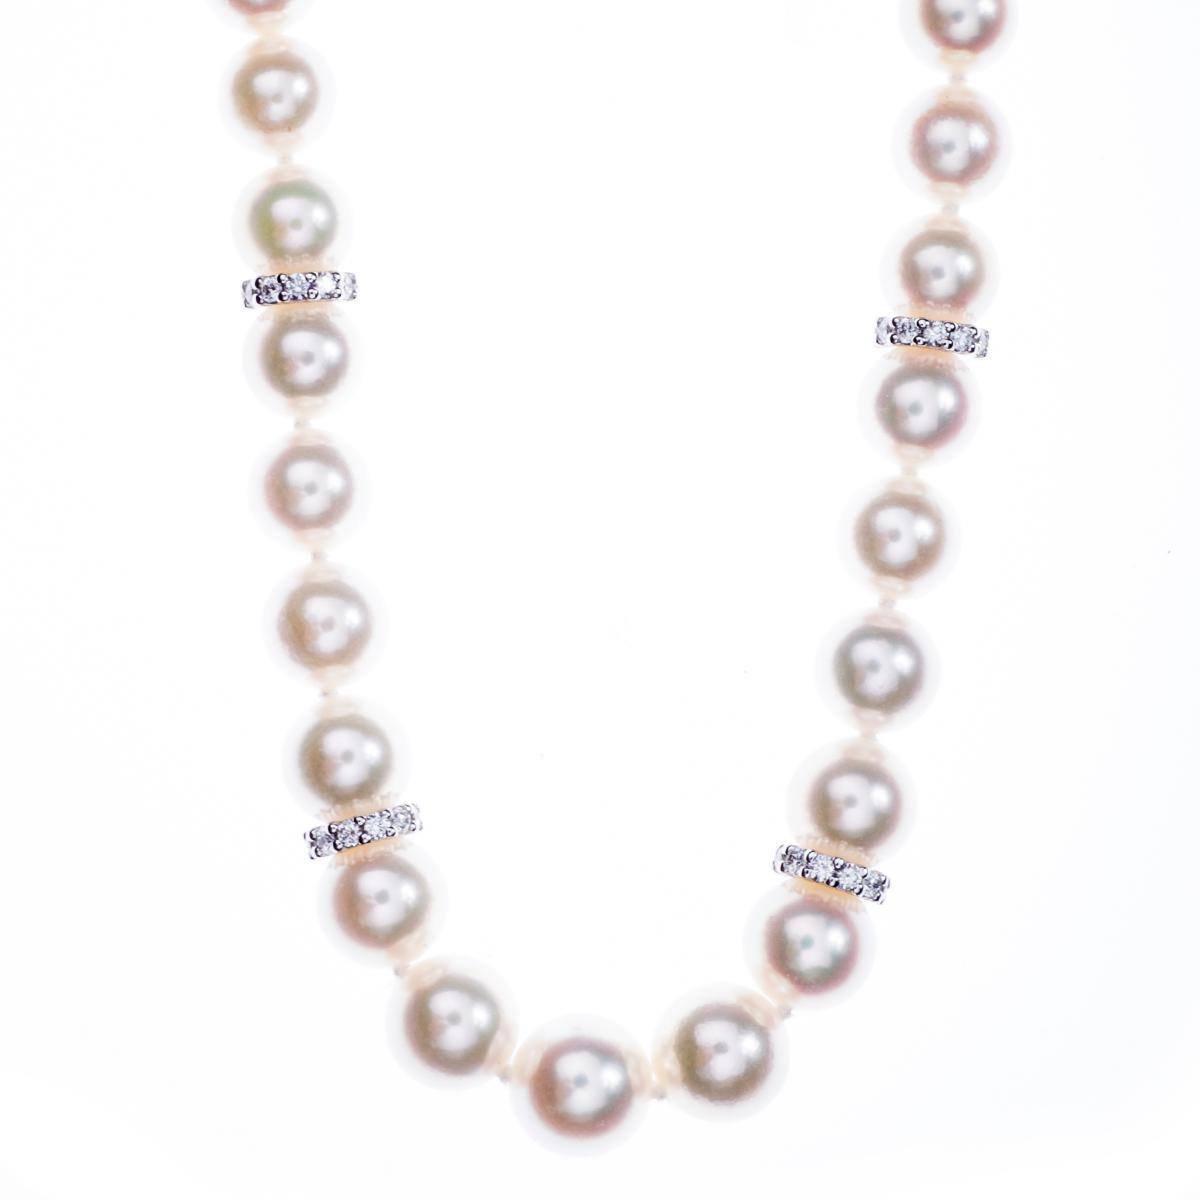 28dadd4ed38e Vintage Mikimoto Pearl Necklace with Diamond Rondelles Gallery Image